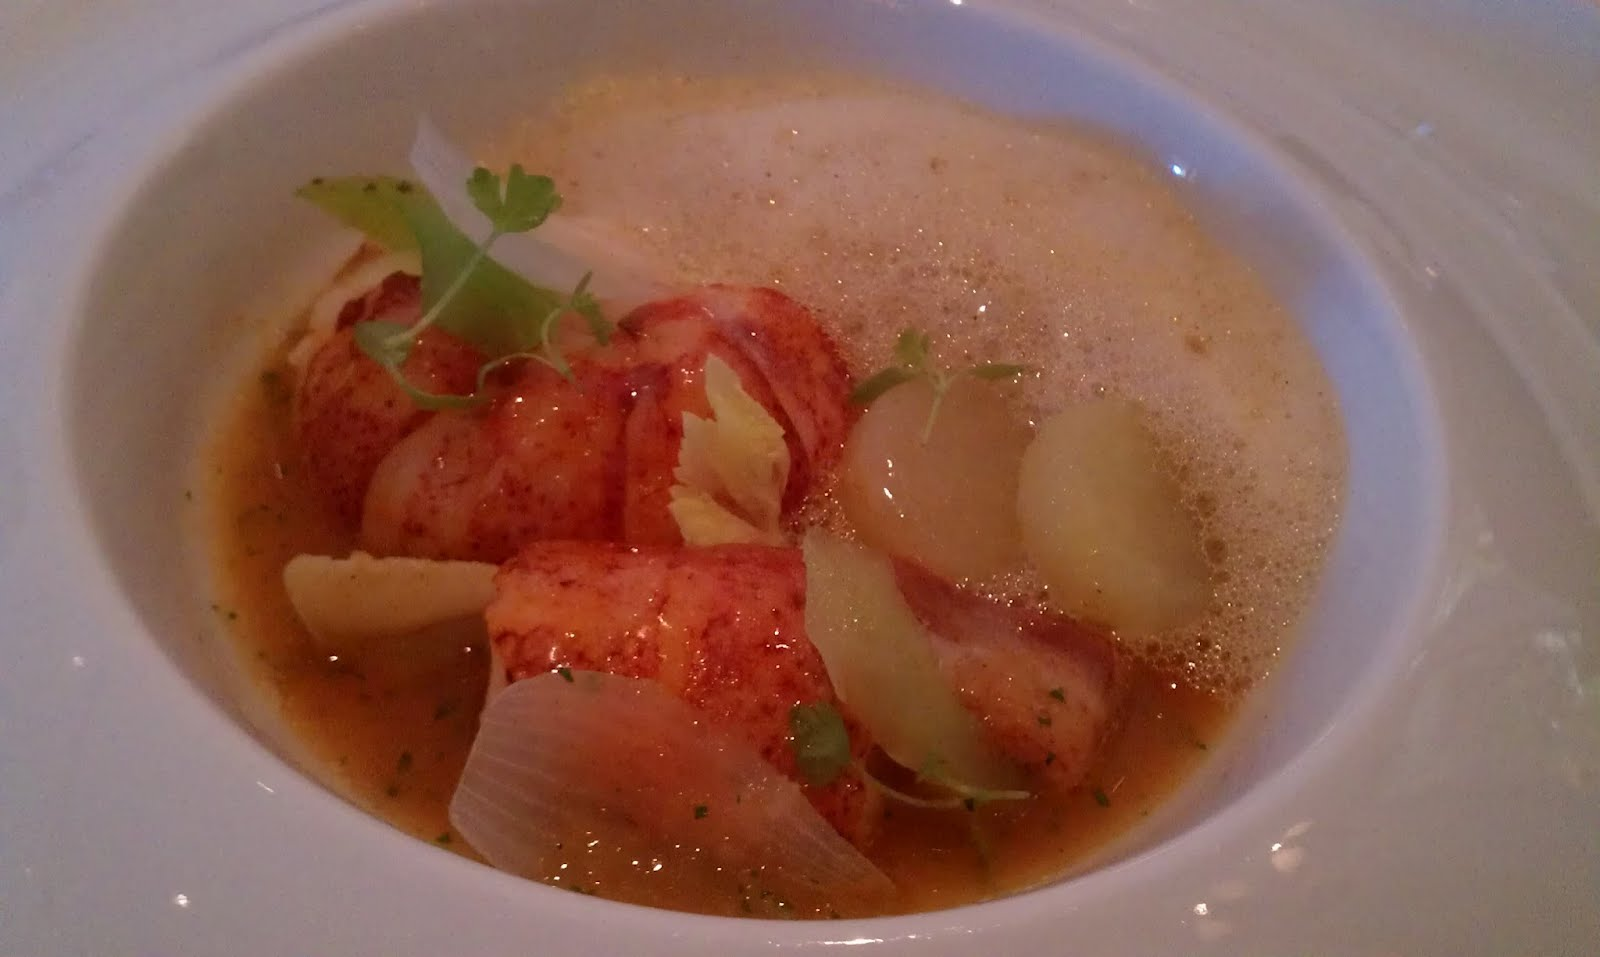 Sweet butter poached lobster fricasee - Yukon gold potatoes, celery ...